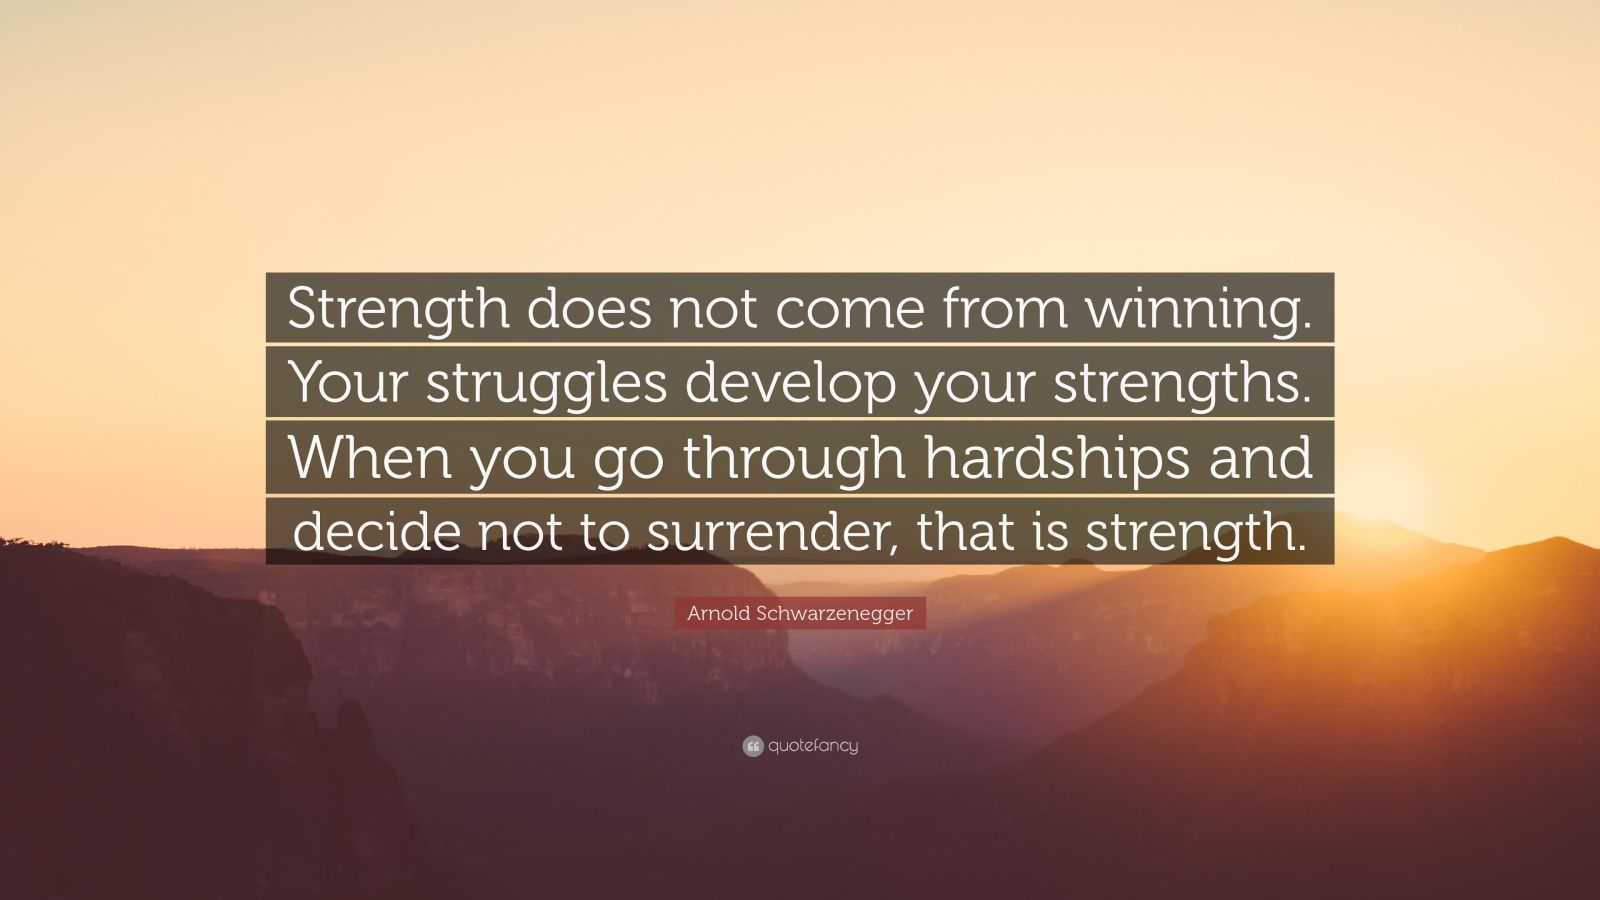 Elon Musk Quotes Wallpaper Arnold Schwarzenegger Quote Strength Does Not Come From